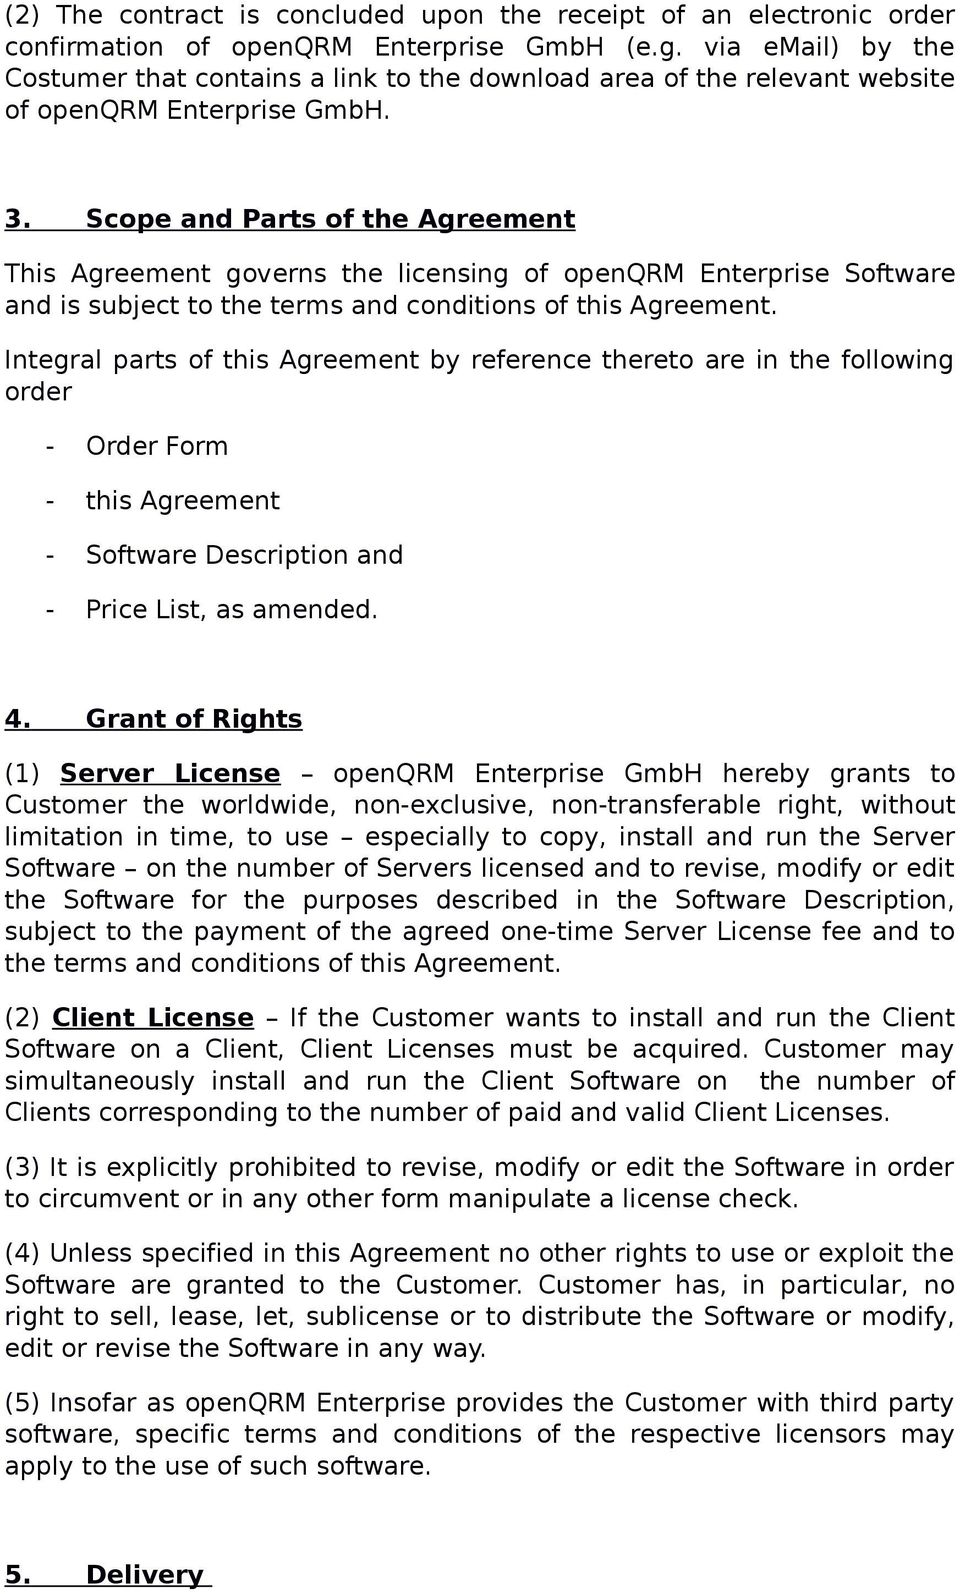 Scope and Parts of the Agreement This Agreement governs the licensing of openqrm Enterprise Software and is subject to the terms and conditions of this Agreement.